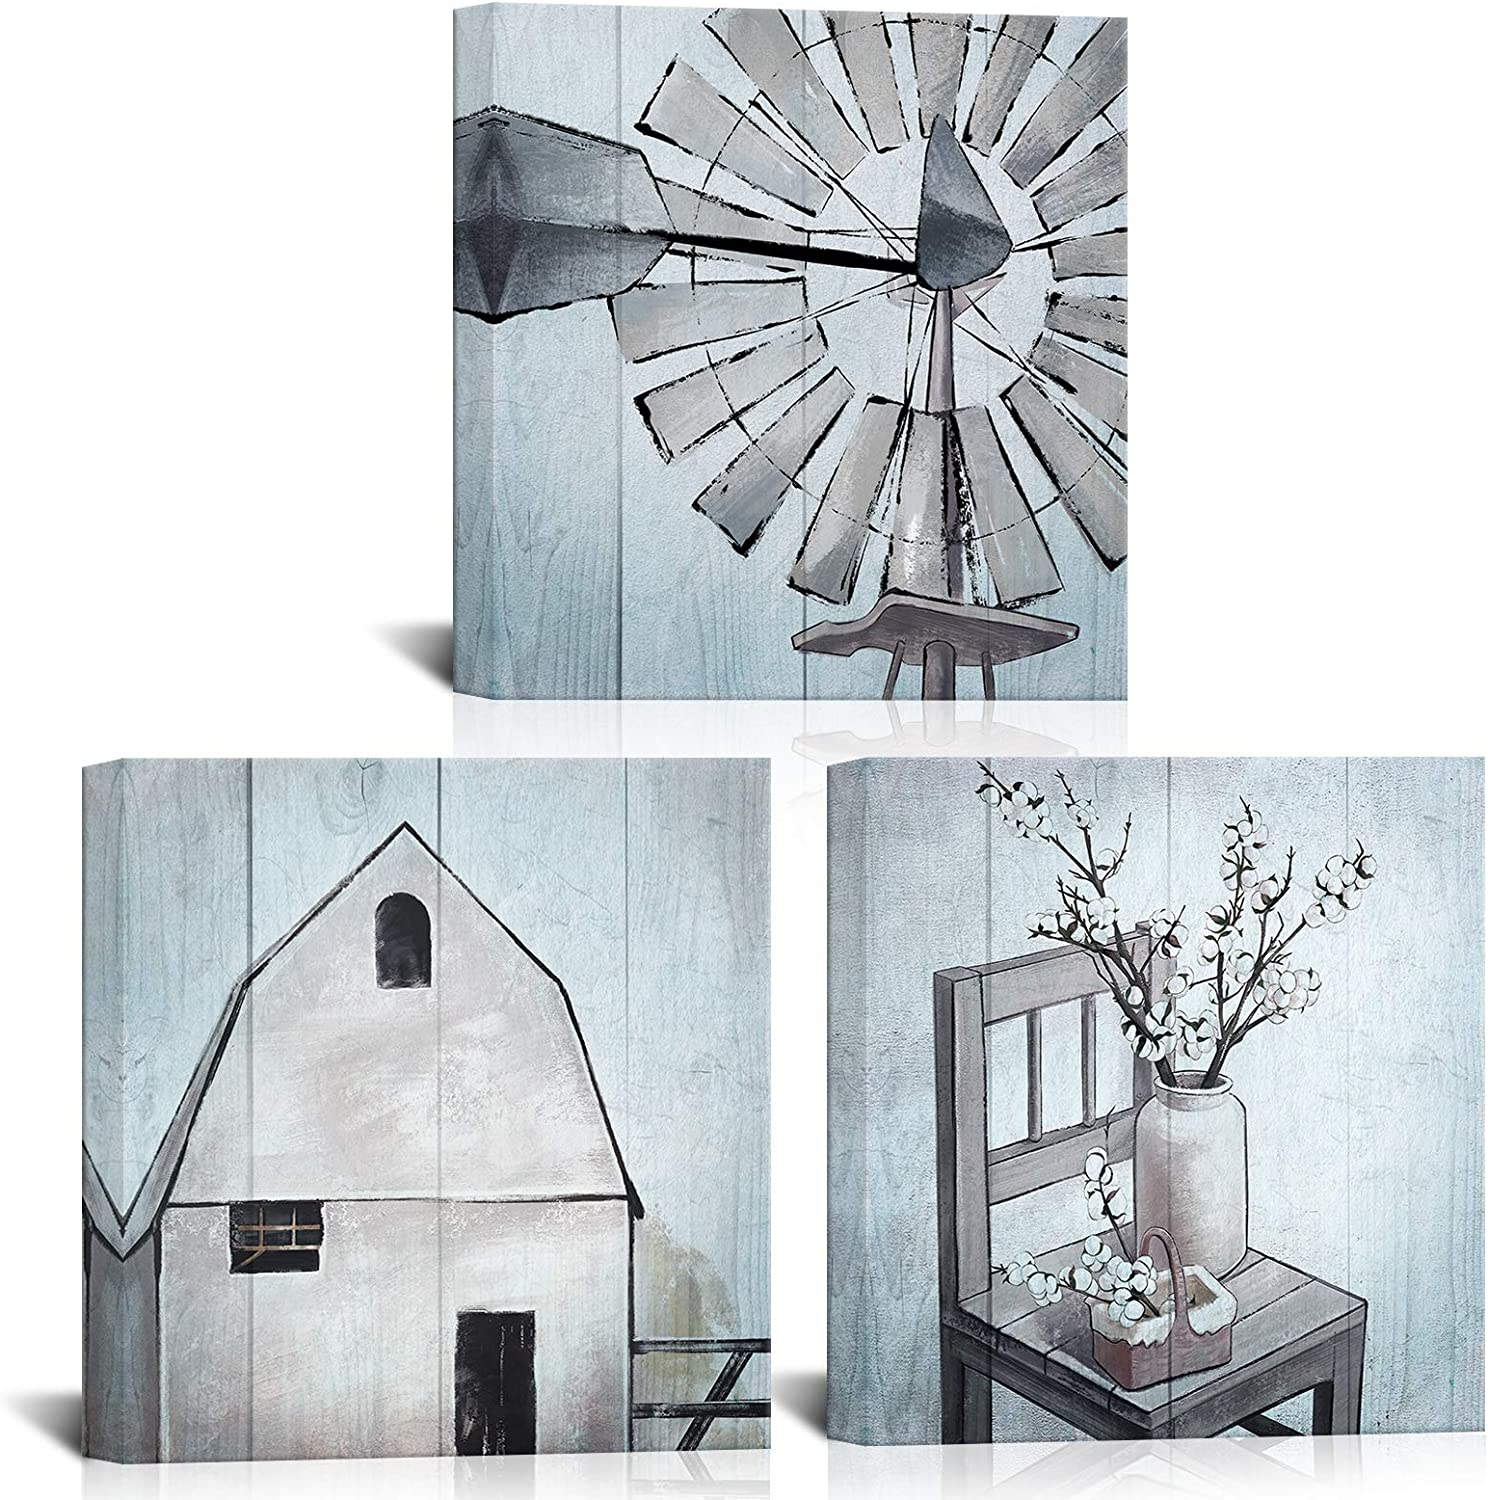 LoveHouse Farmhouse Pictures Rustic Windmill Cabin Country Wall Art for Bedroom Bathroom Wall Decor Farm Themed Canvas Picture Minimalist Decoration Gallery Wrap Ready to Hang 12x12inchx3pcs